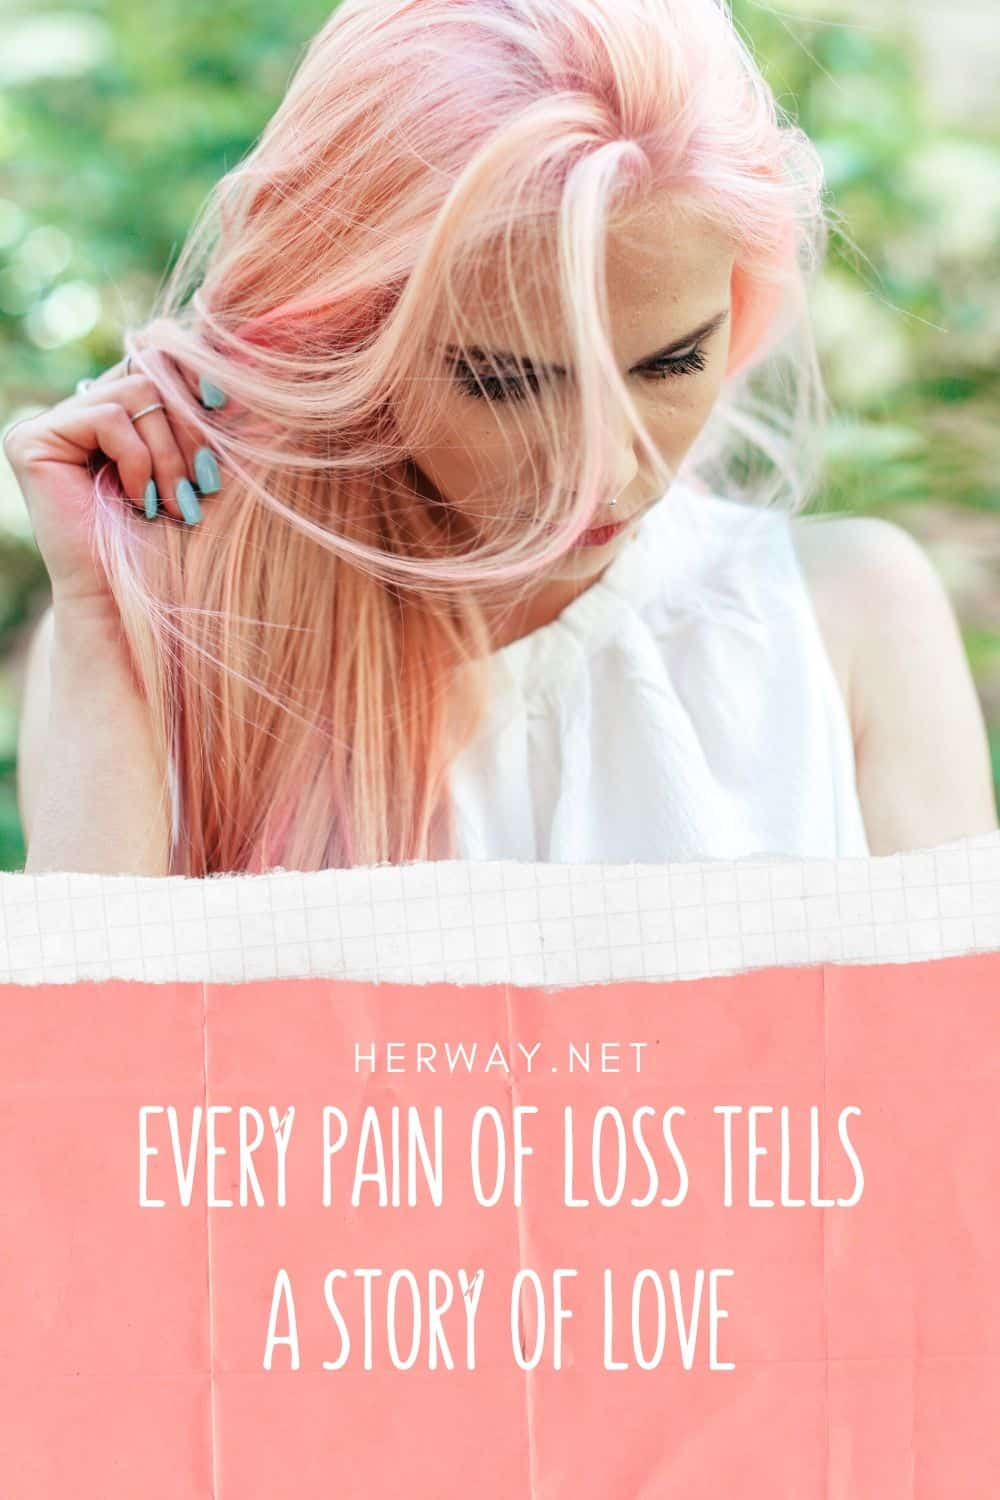 EVERY PAIN OF LOSS TELLS A STORY OF LOVE